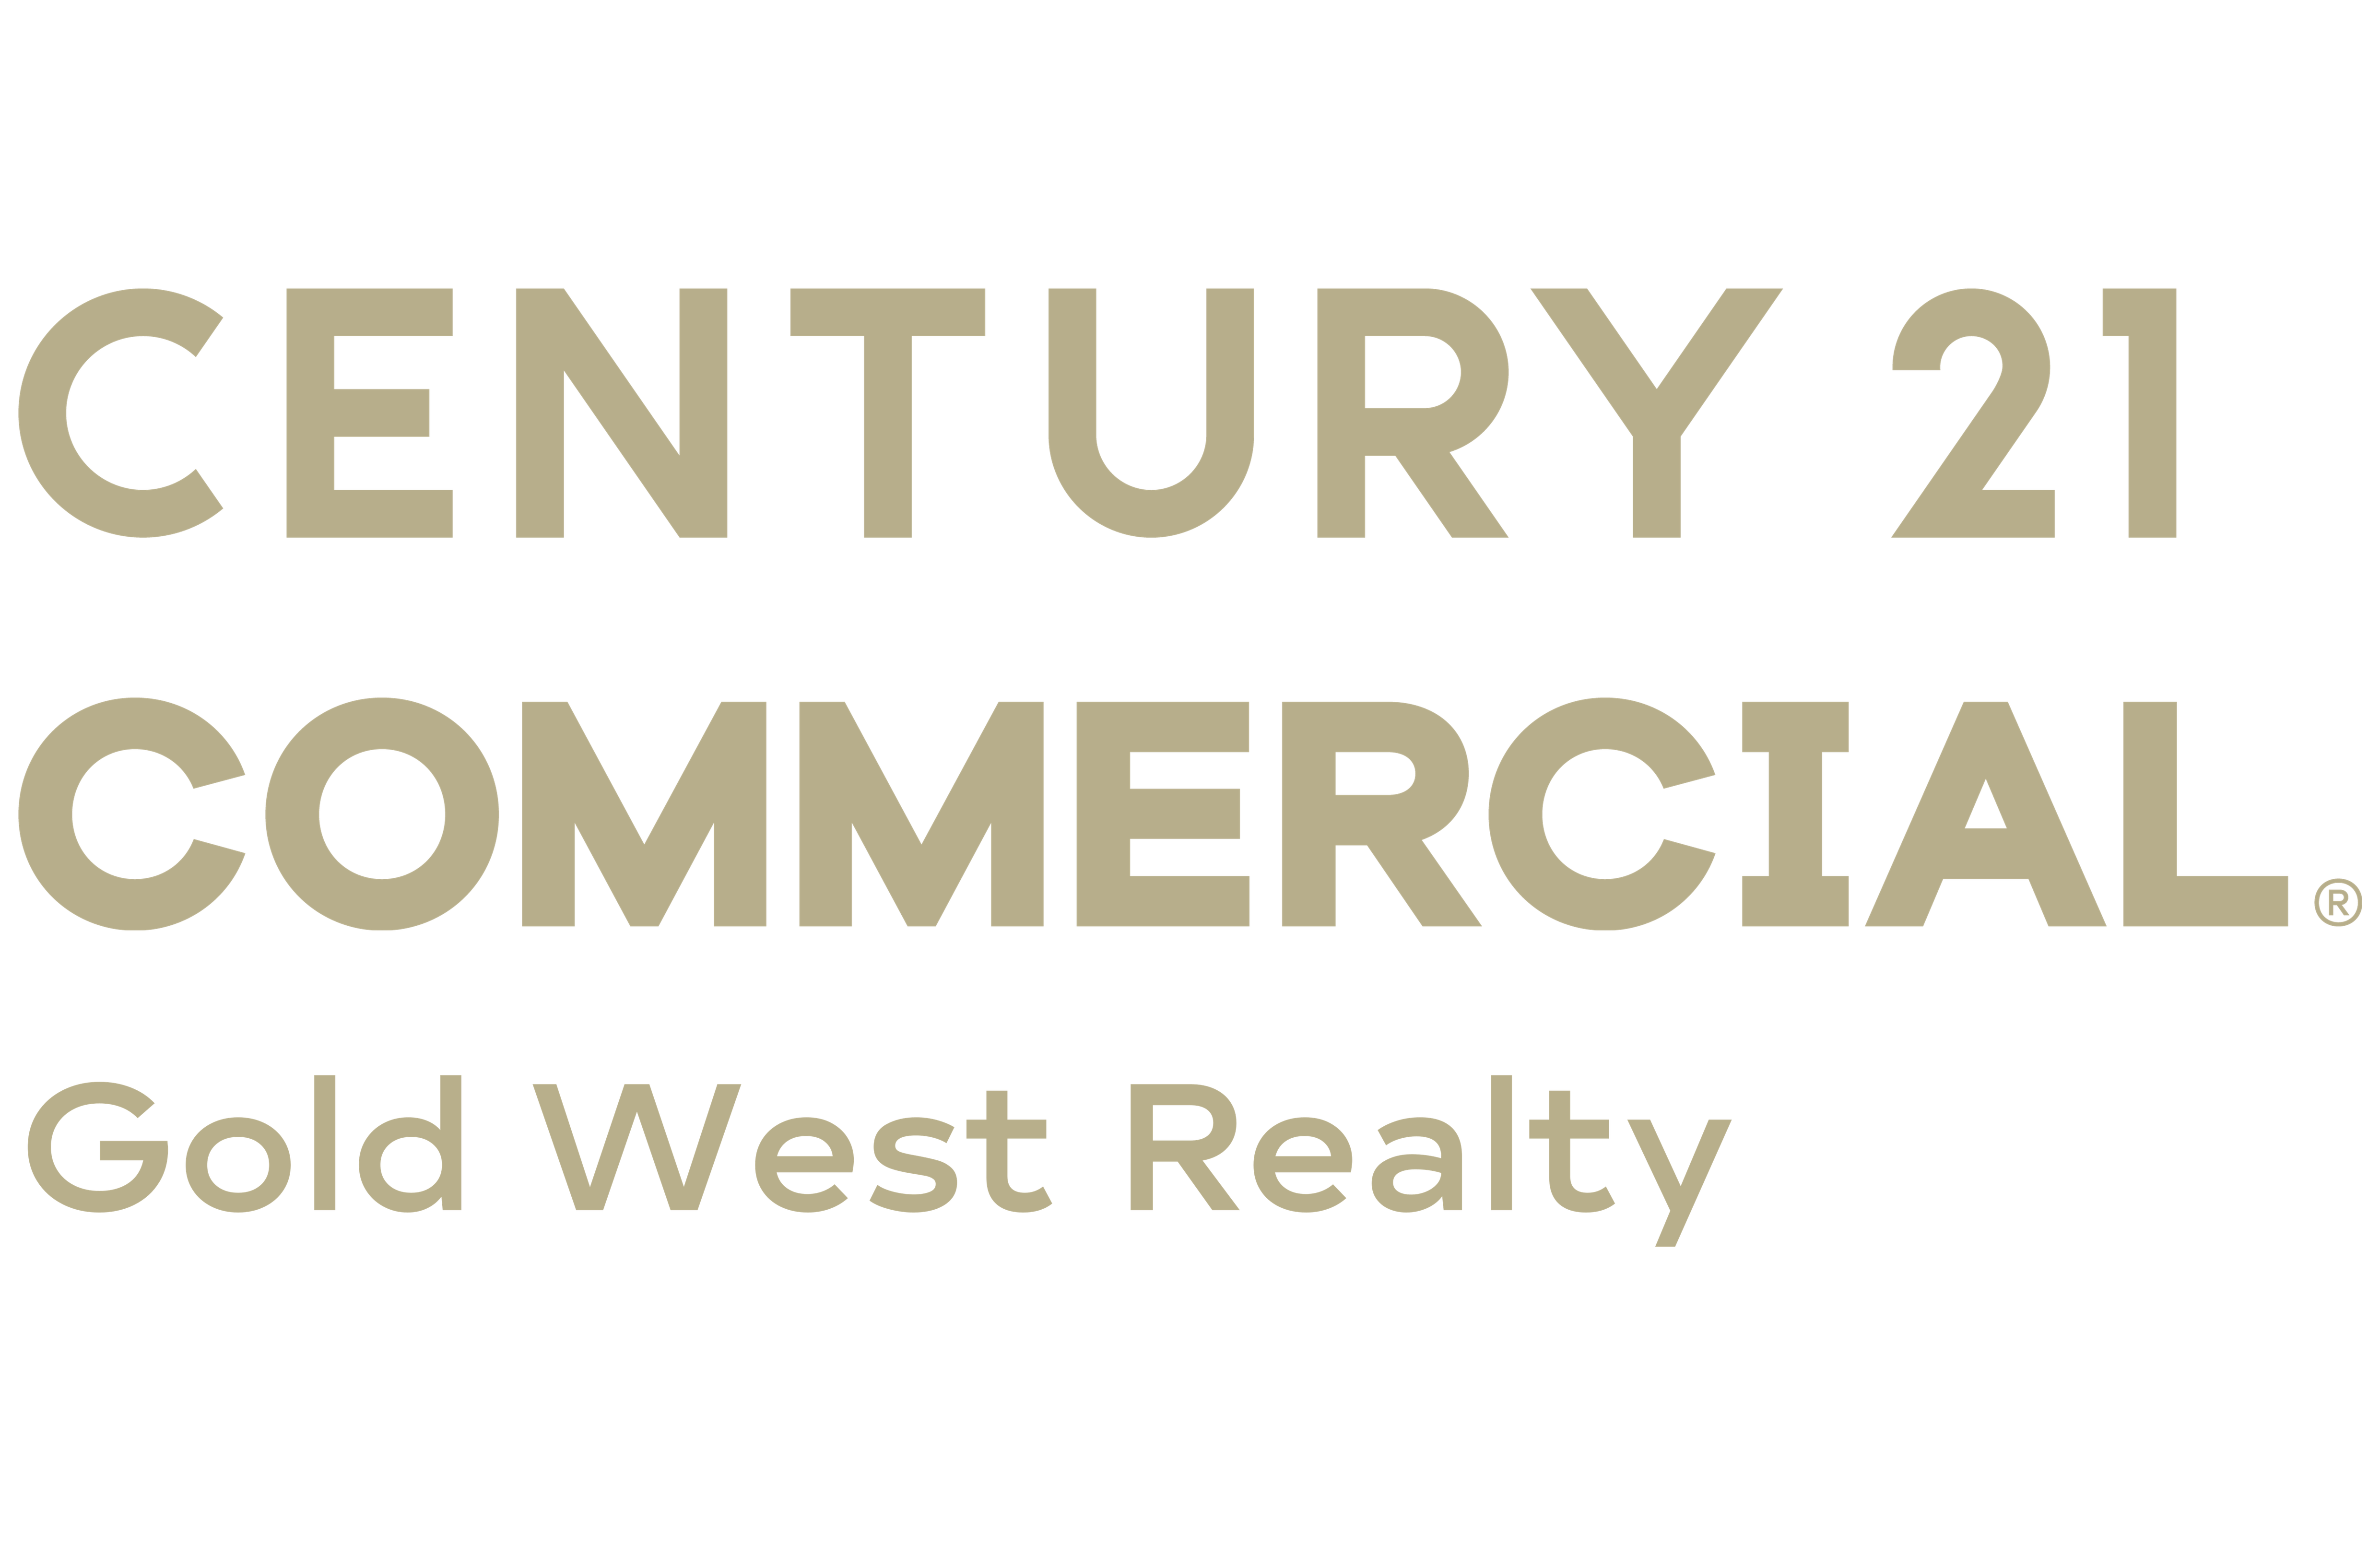 CENTURY 21 Gold West Realty